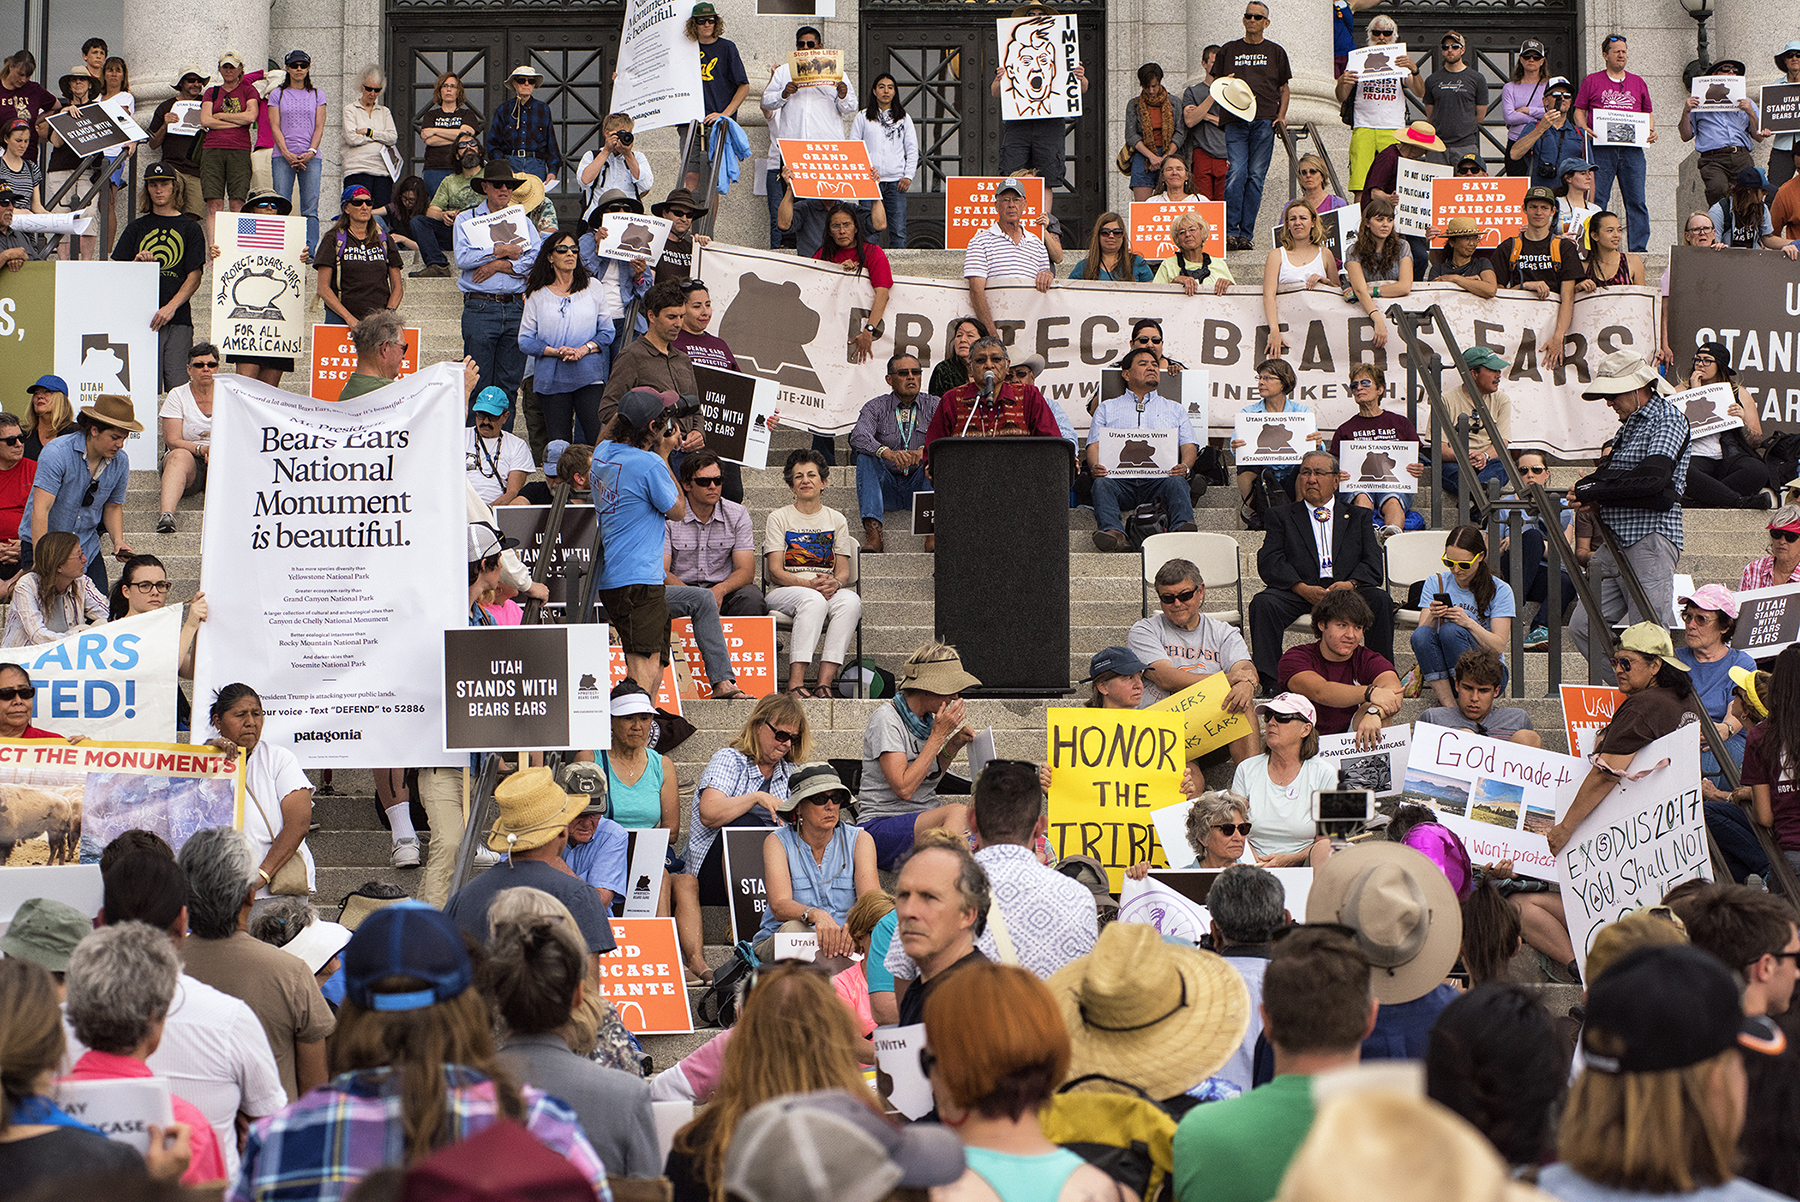 Protests over Bears Ears